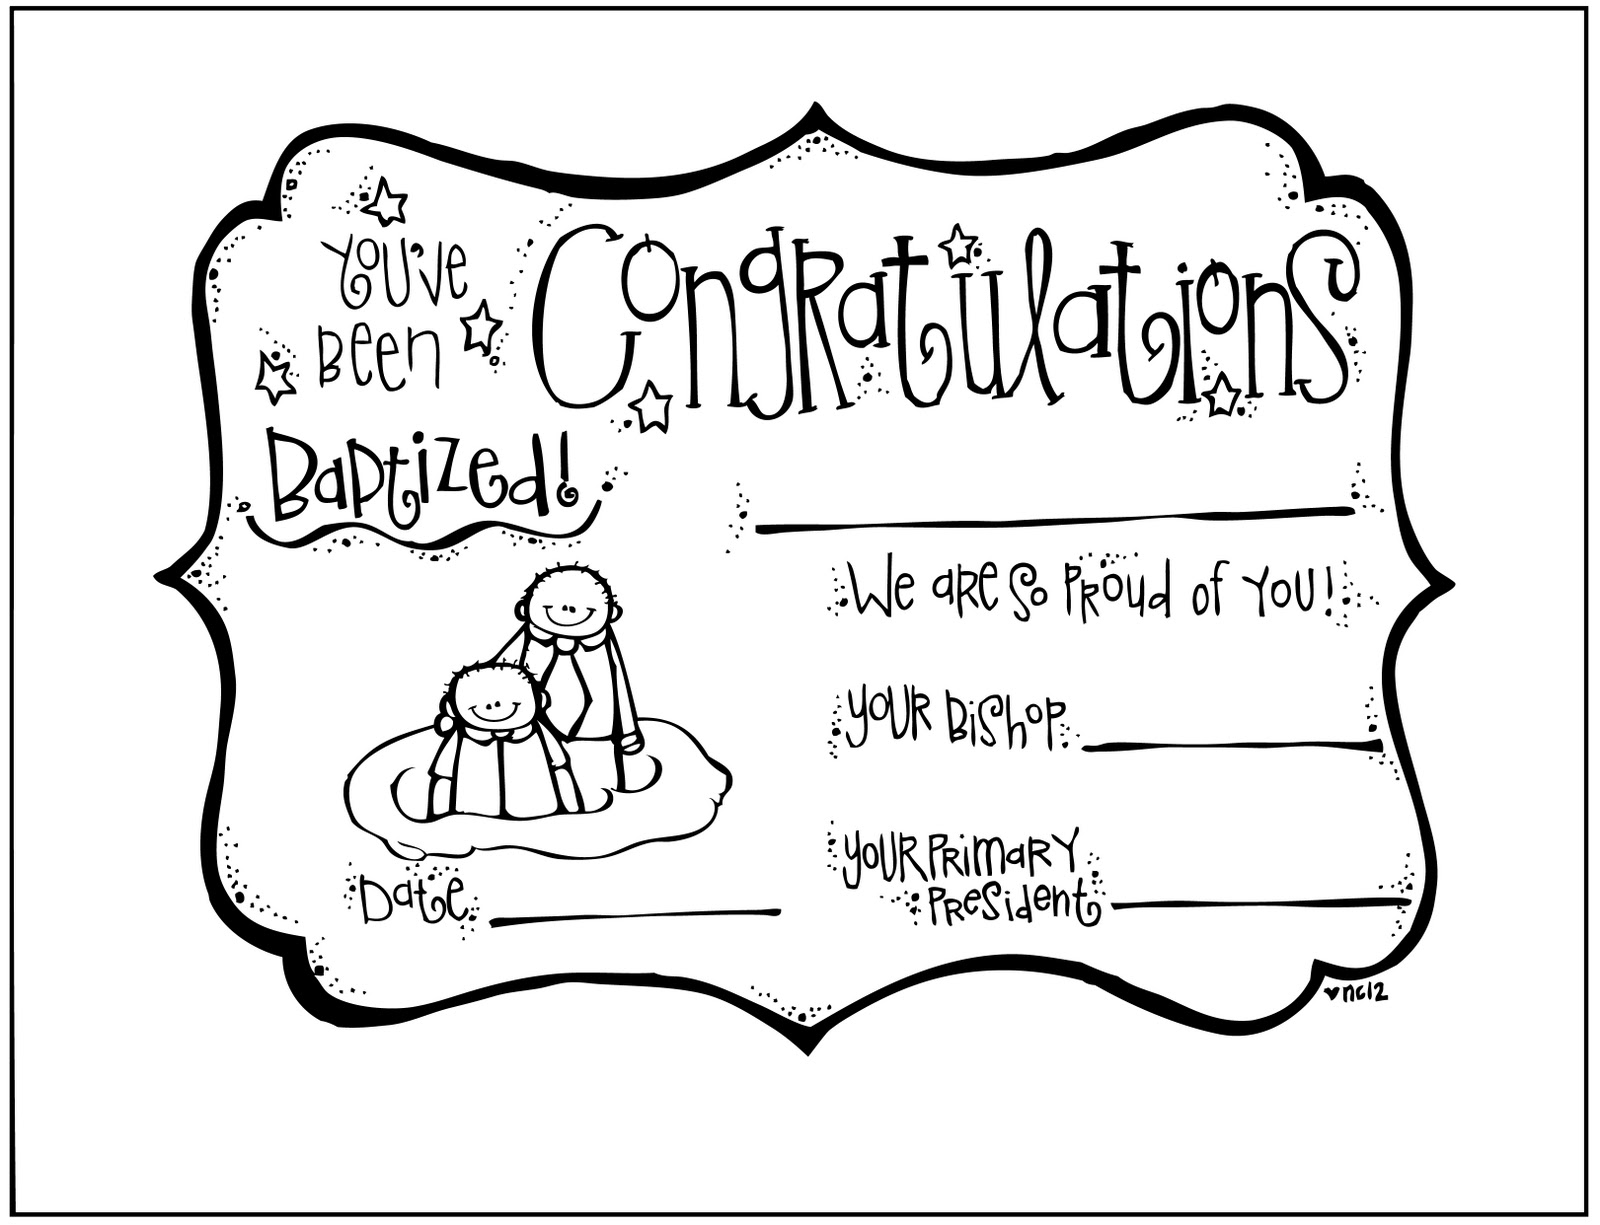 baby dedication certificates templates all file resume sample baby dedication certificates templates traditional certificate templates dyetub baby dedication certificates templates 1000 images about